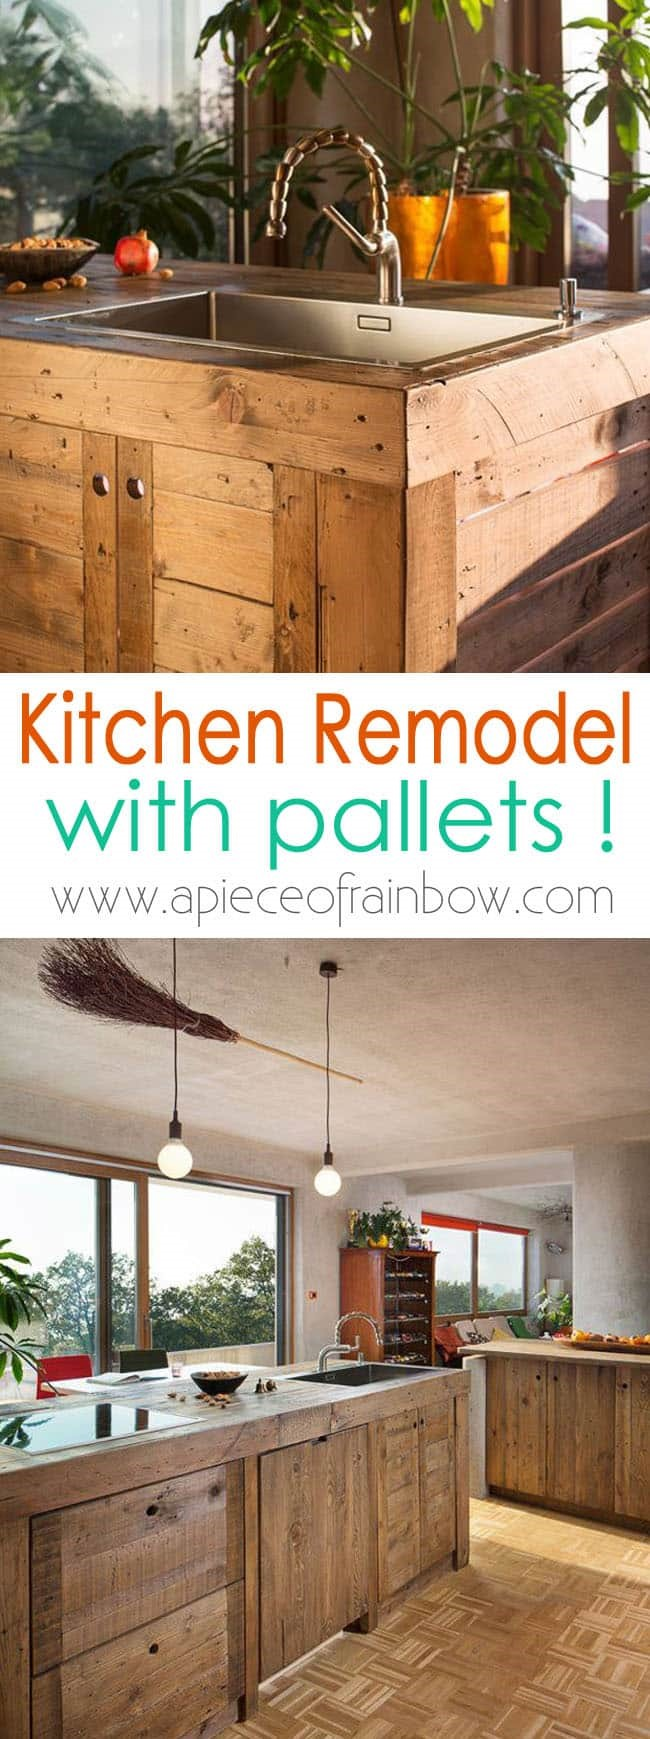 10 Kitchen Remodel with Pallets Simphome com